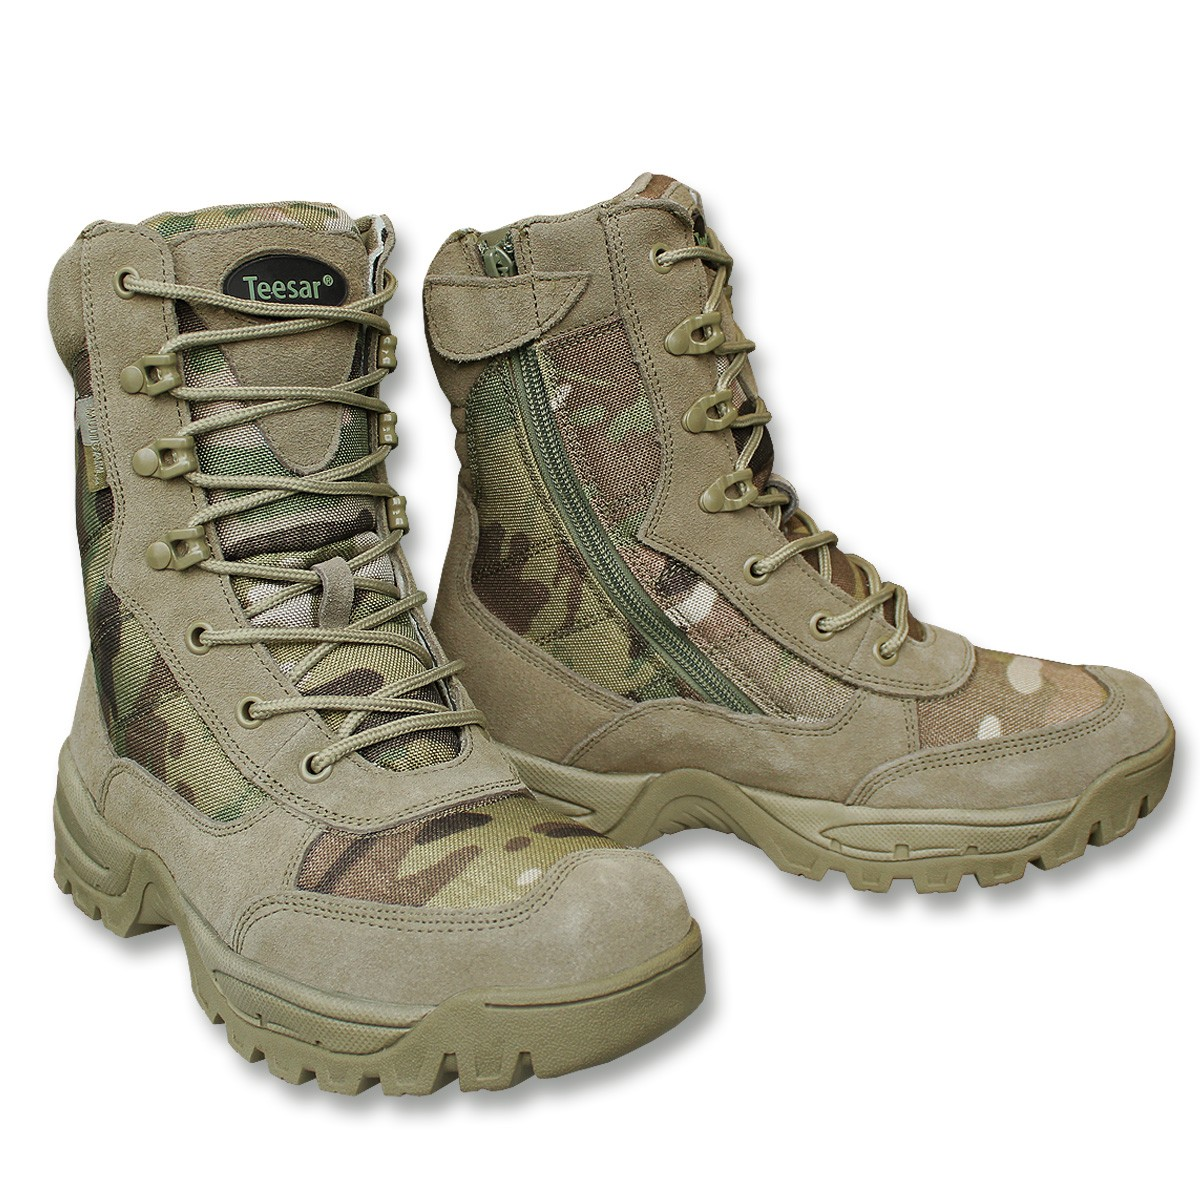 0c6d1cfd96c8 Katona csizma TACTICAL BOOT M.YKK ZIPPER - Miltec By Sturm - Multicam |  Army Shop Admiral